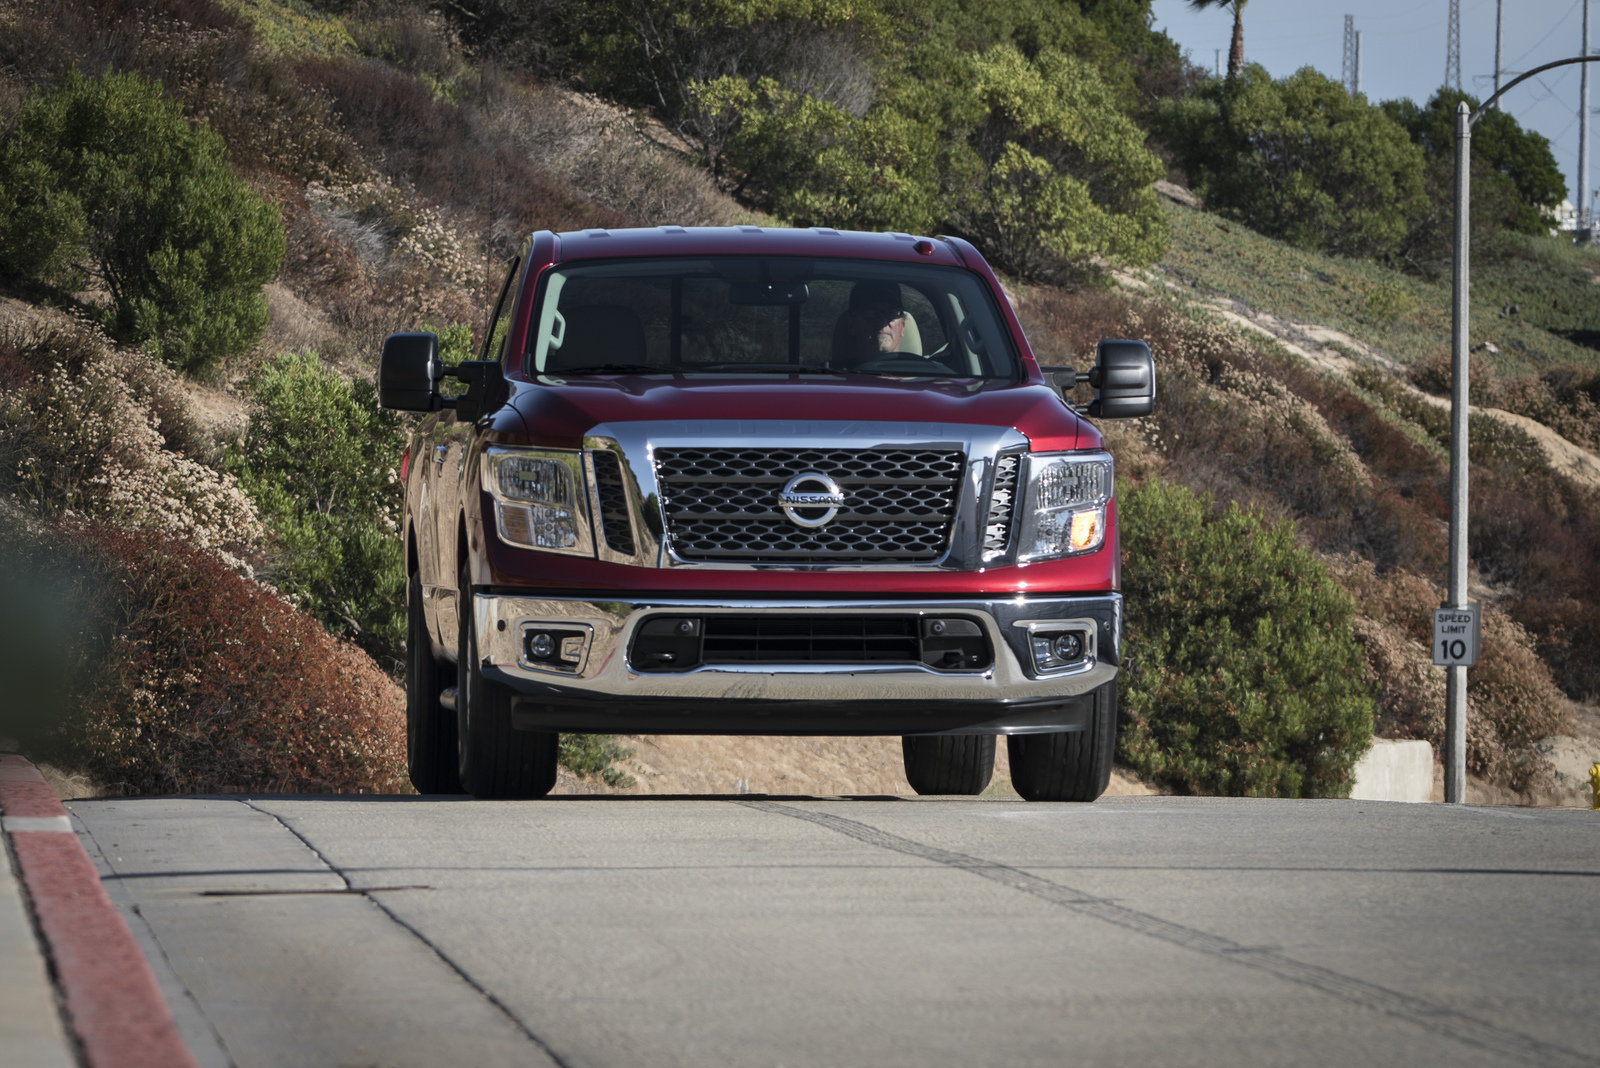 2017 nissan titan xd single cab picture 683662 truck review top speed. Black Bedroom Furniture Sets. Home Design Ideas